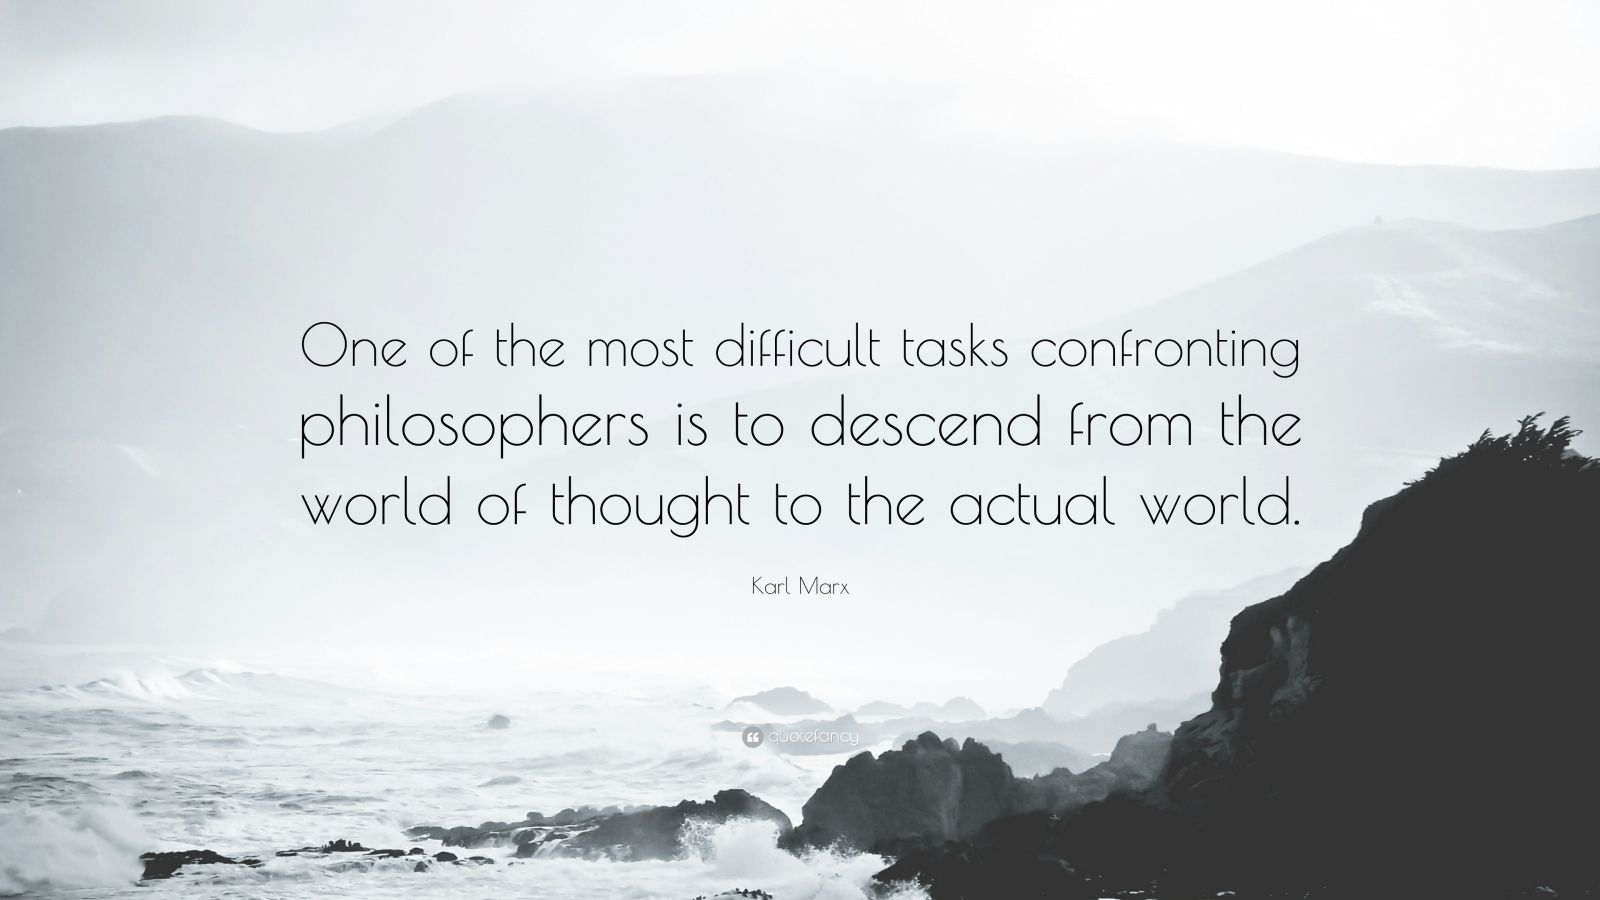 Karl marx quotes 100 wallpapers quotefancy karl marx quote one of the most difficult tasks confronting philosophers is to descend kristyandbryce Images